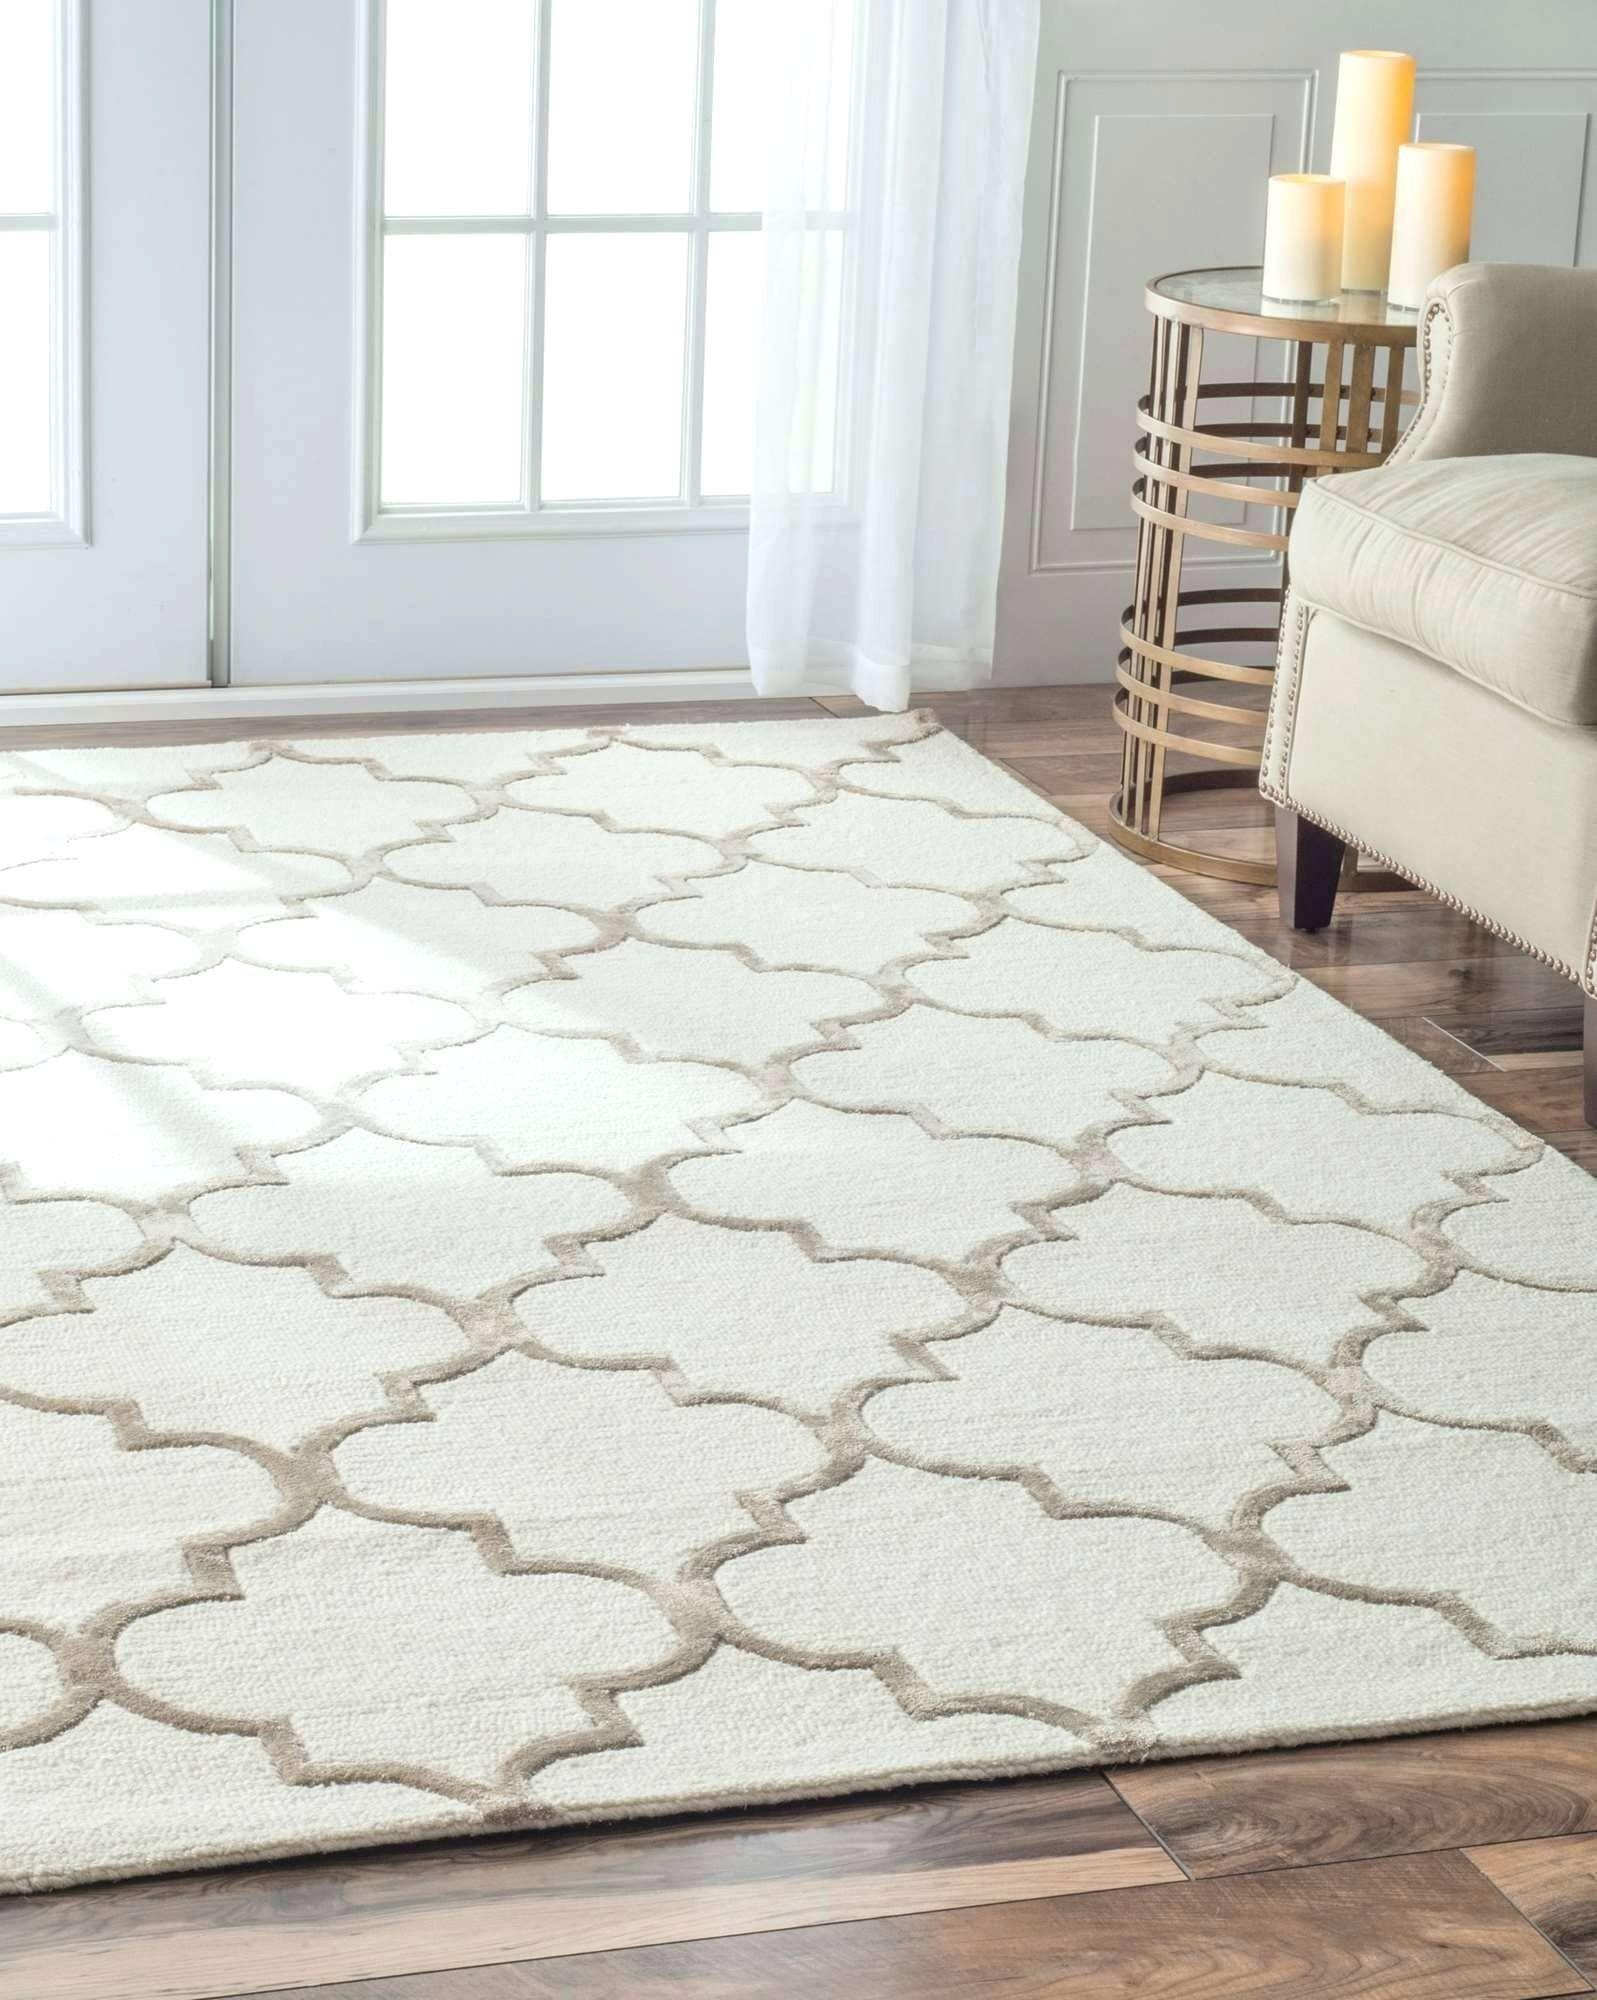 Amazing Trellis Rugs Your Home Ideas 2018 9fitmonths